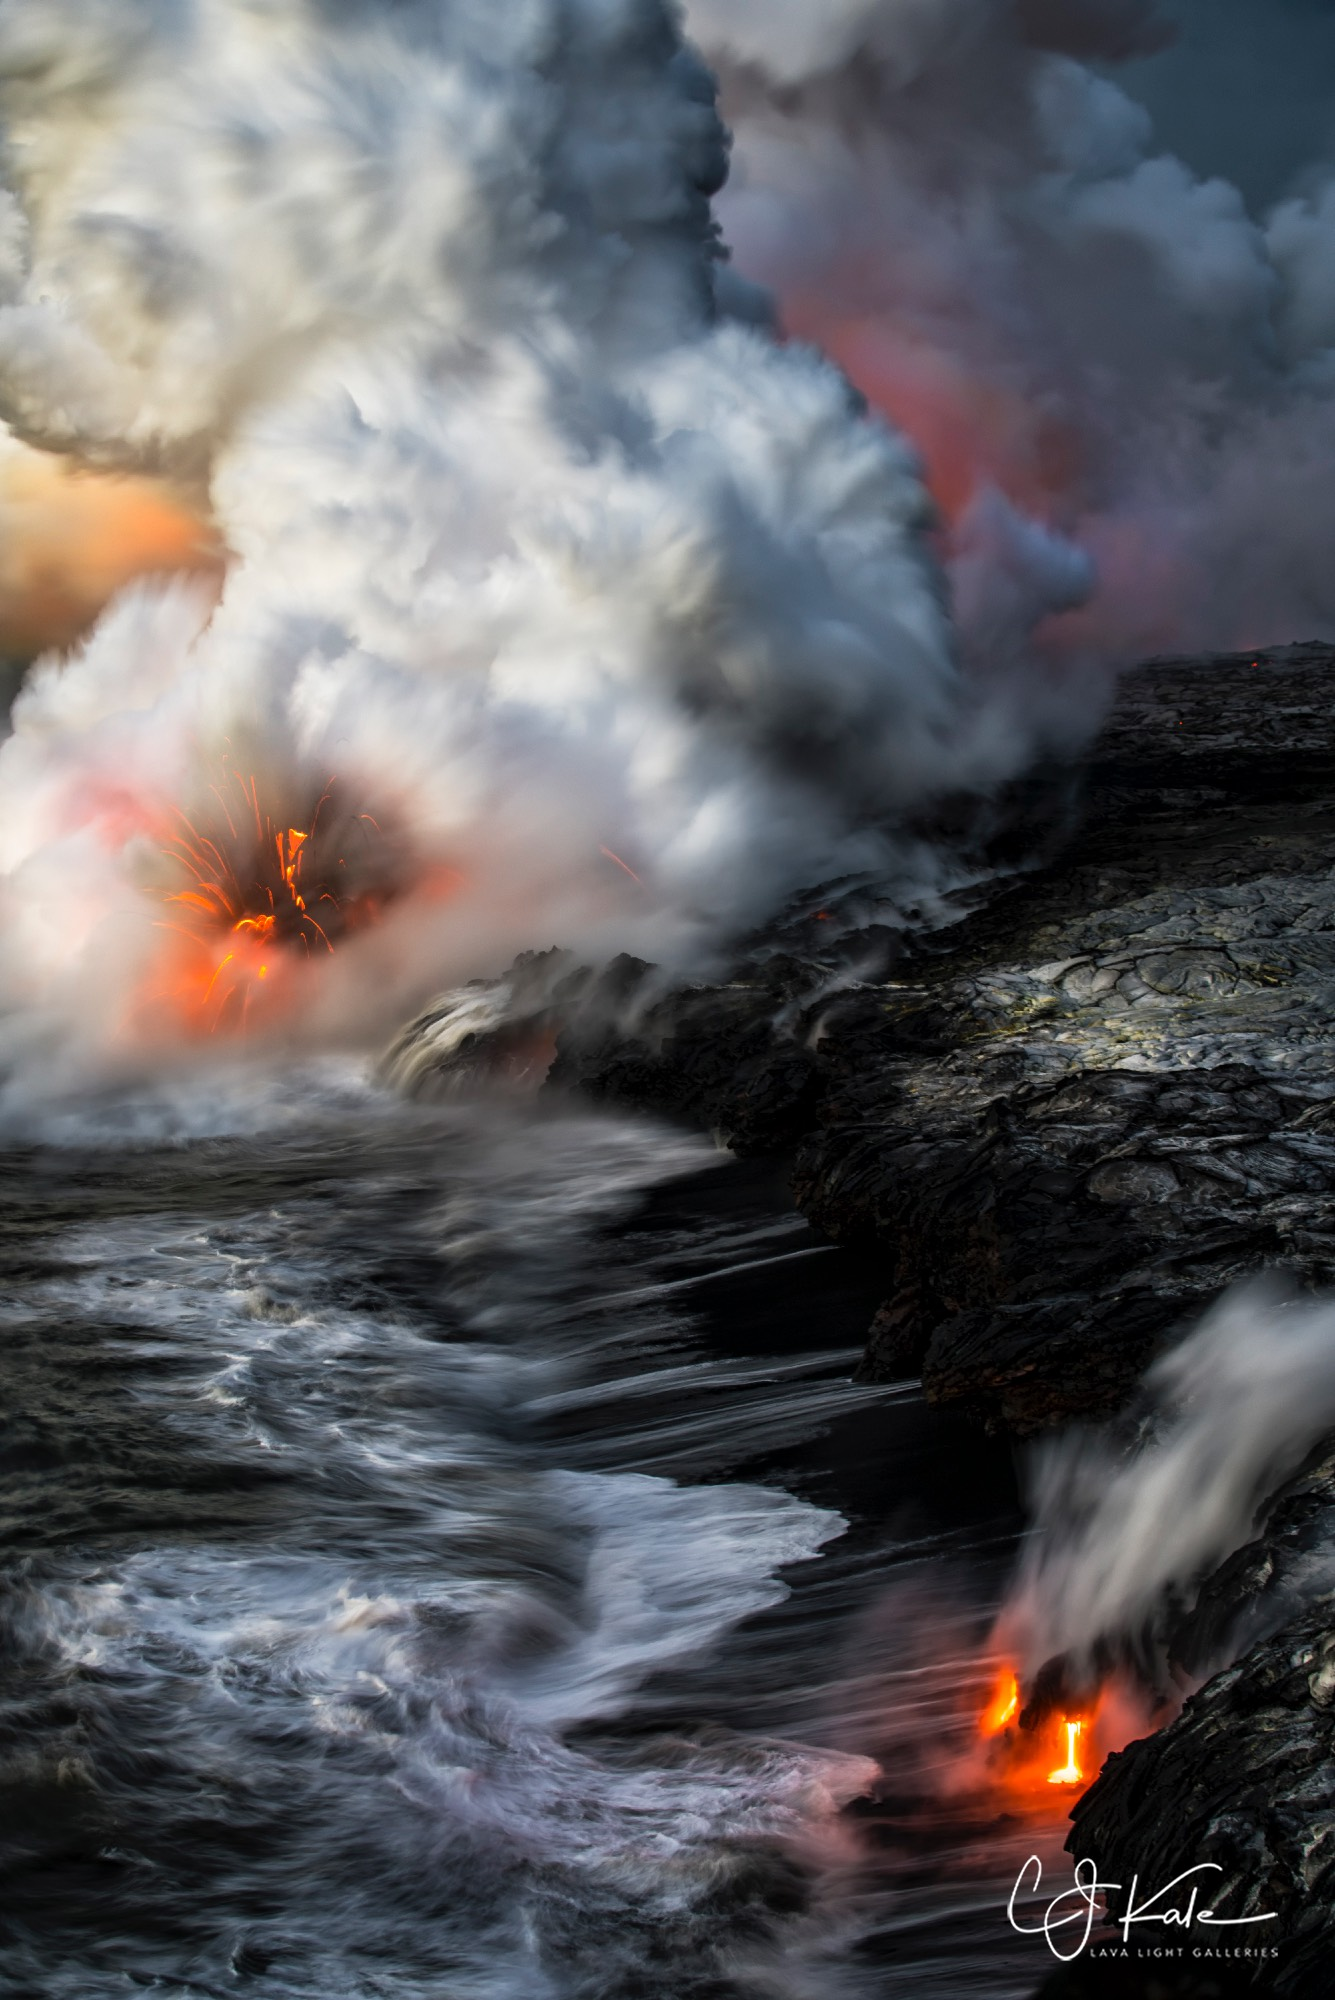 Lots happening when the lava meets the sea.